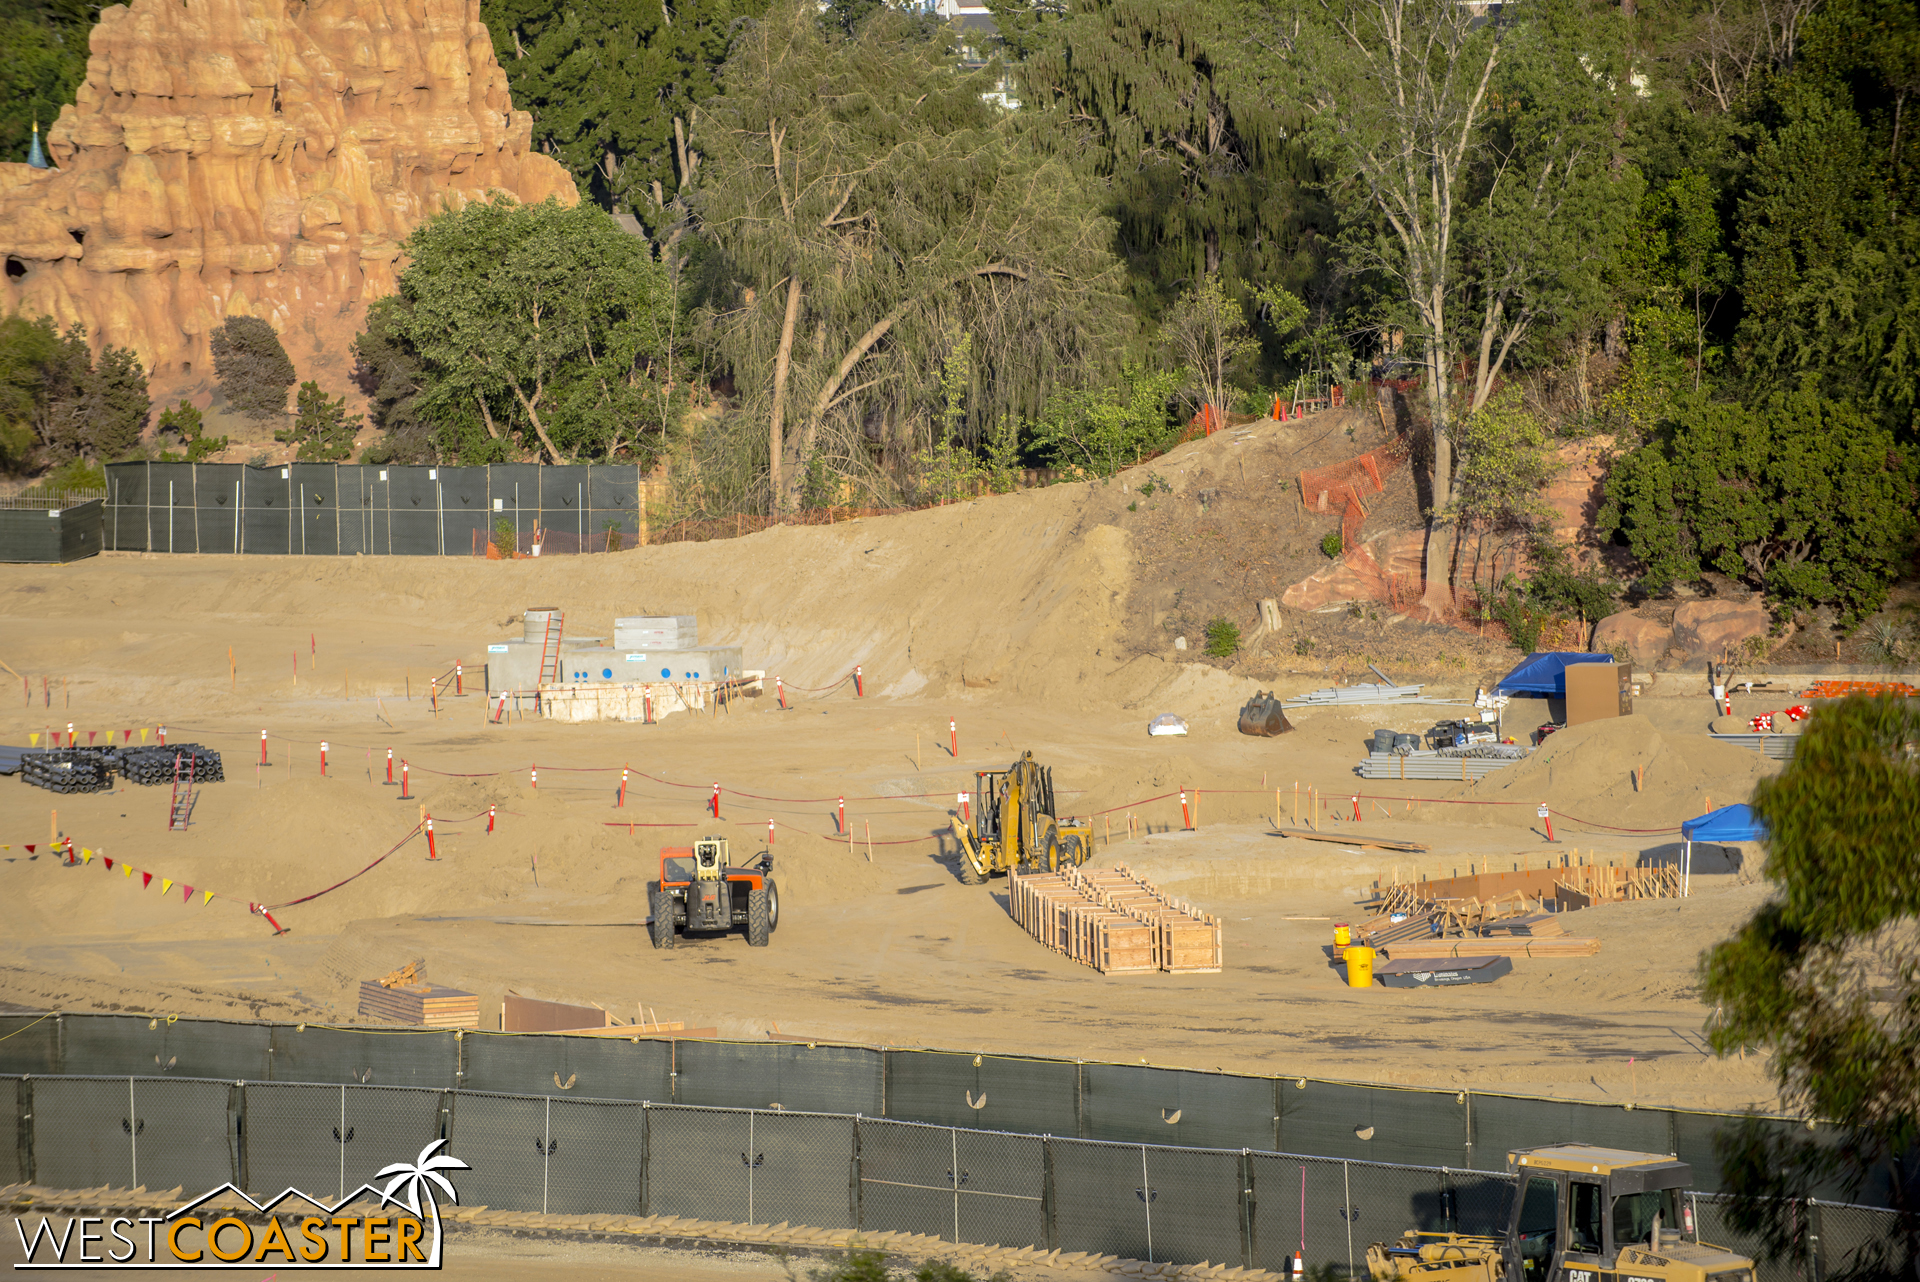 Looks like the beginnings of formwork are popping up.